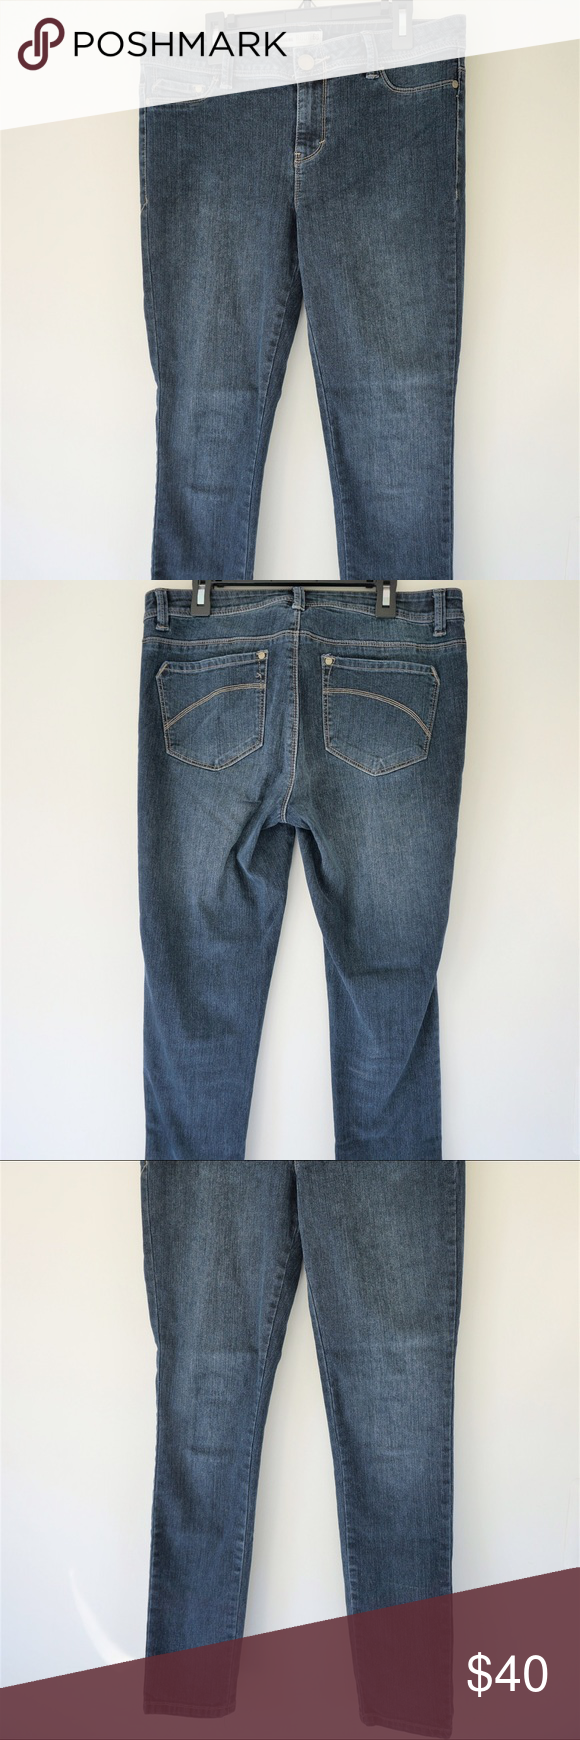 Skinny Classic Fit Jeans, Route 66 brand, size 8 Skinny Classic Fit Jegging jeans, Route 66 brand, size 8. Wonderful condition - looks like new but unfortunately doesn't have the tags on them. Only worn once. Route 66 Pants Skinny